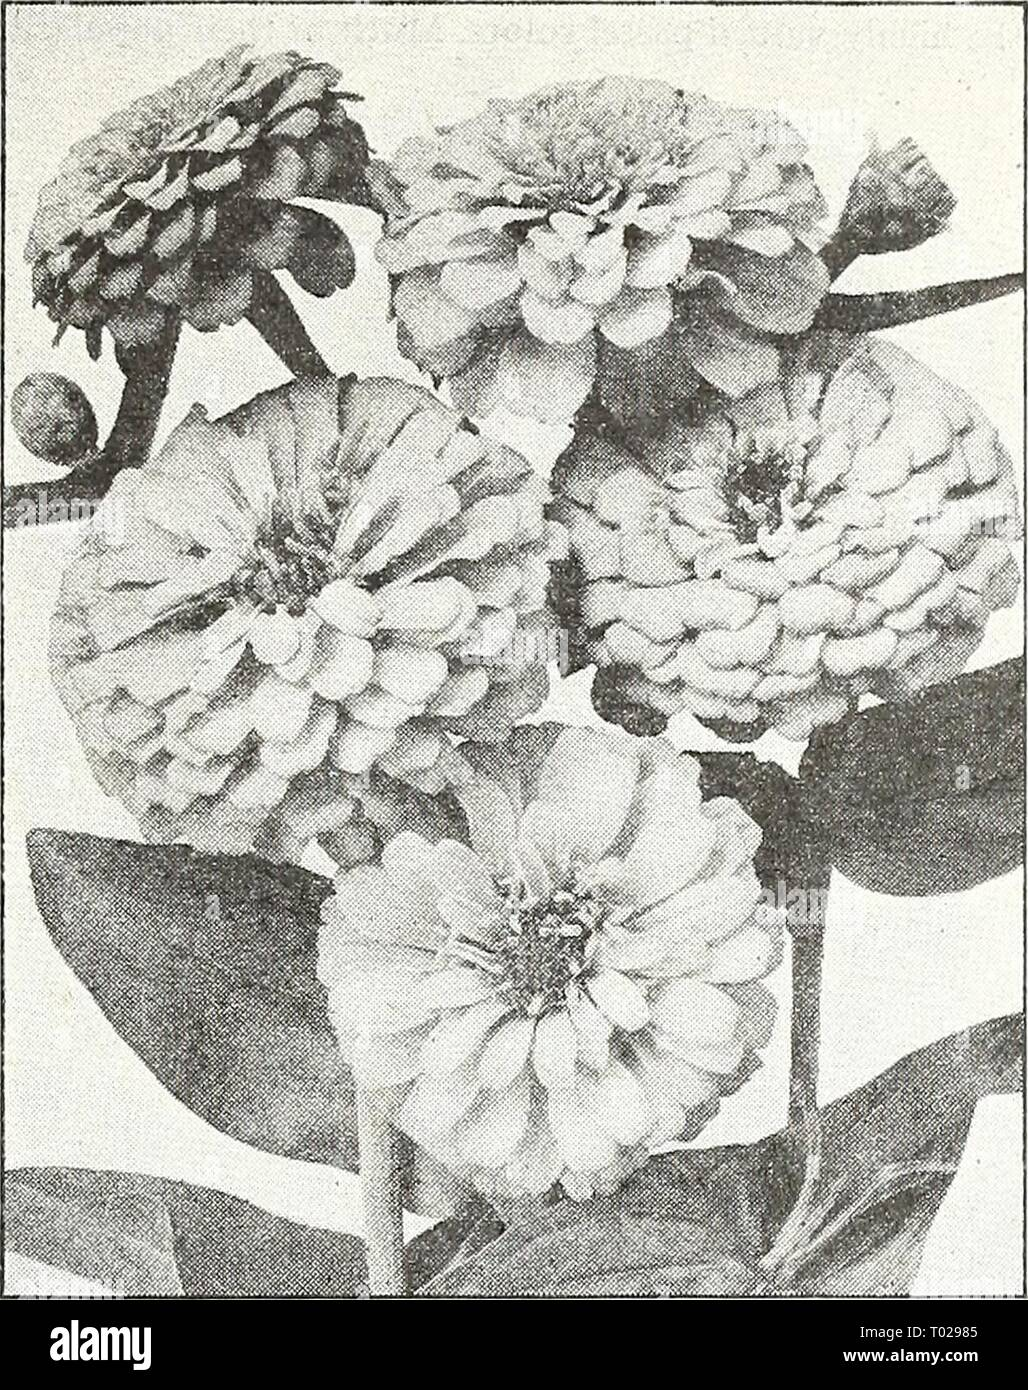 Dreer's garden book for 1947 . dreersgardenbook1947henr Year: 1947  Virginian Stocks Virginian Stocks ® Malcotnia maritiina 4444 Mixed. This old-fashioned hardy annual blooms profusely during late spring and summer. Of easiest cul- ture. Grows about a foot tall and bears lovely, richly fragrant blooms in white, red, rose, and lilac shades. Pkt. 10c; ^ oz. 2Sc; ^^ oz. 40c. Wallflower [hhp] Cheiranthus Cheiri Magnificent flowers noted for the rich color of their blooms. They have a pleasing fragrance and bloom during 2arly spring. Requires protection where winters are cold. 18 to 24 inches tall. - Stock Image